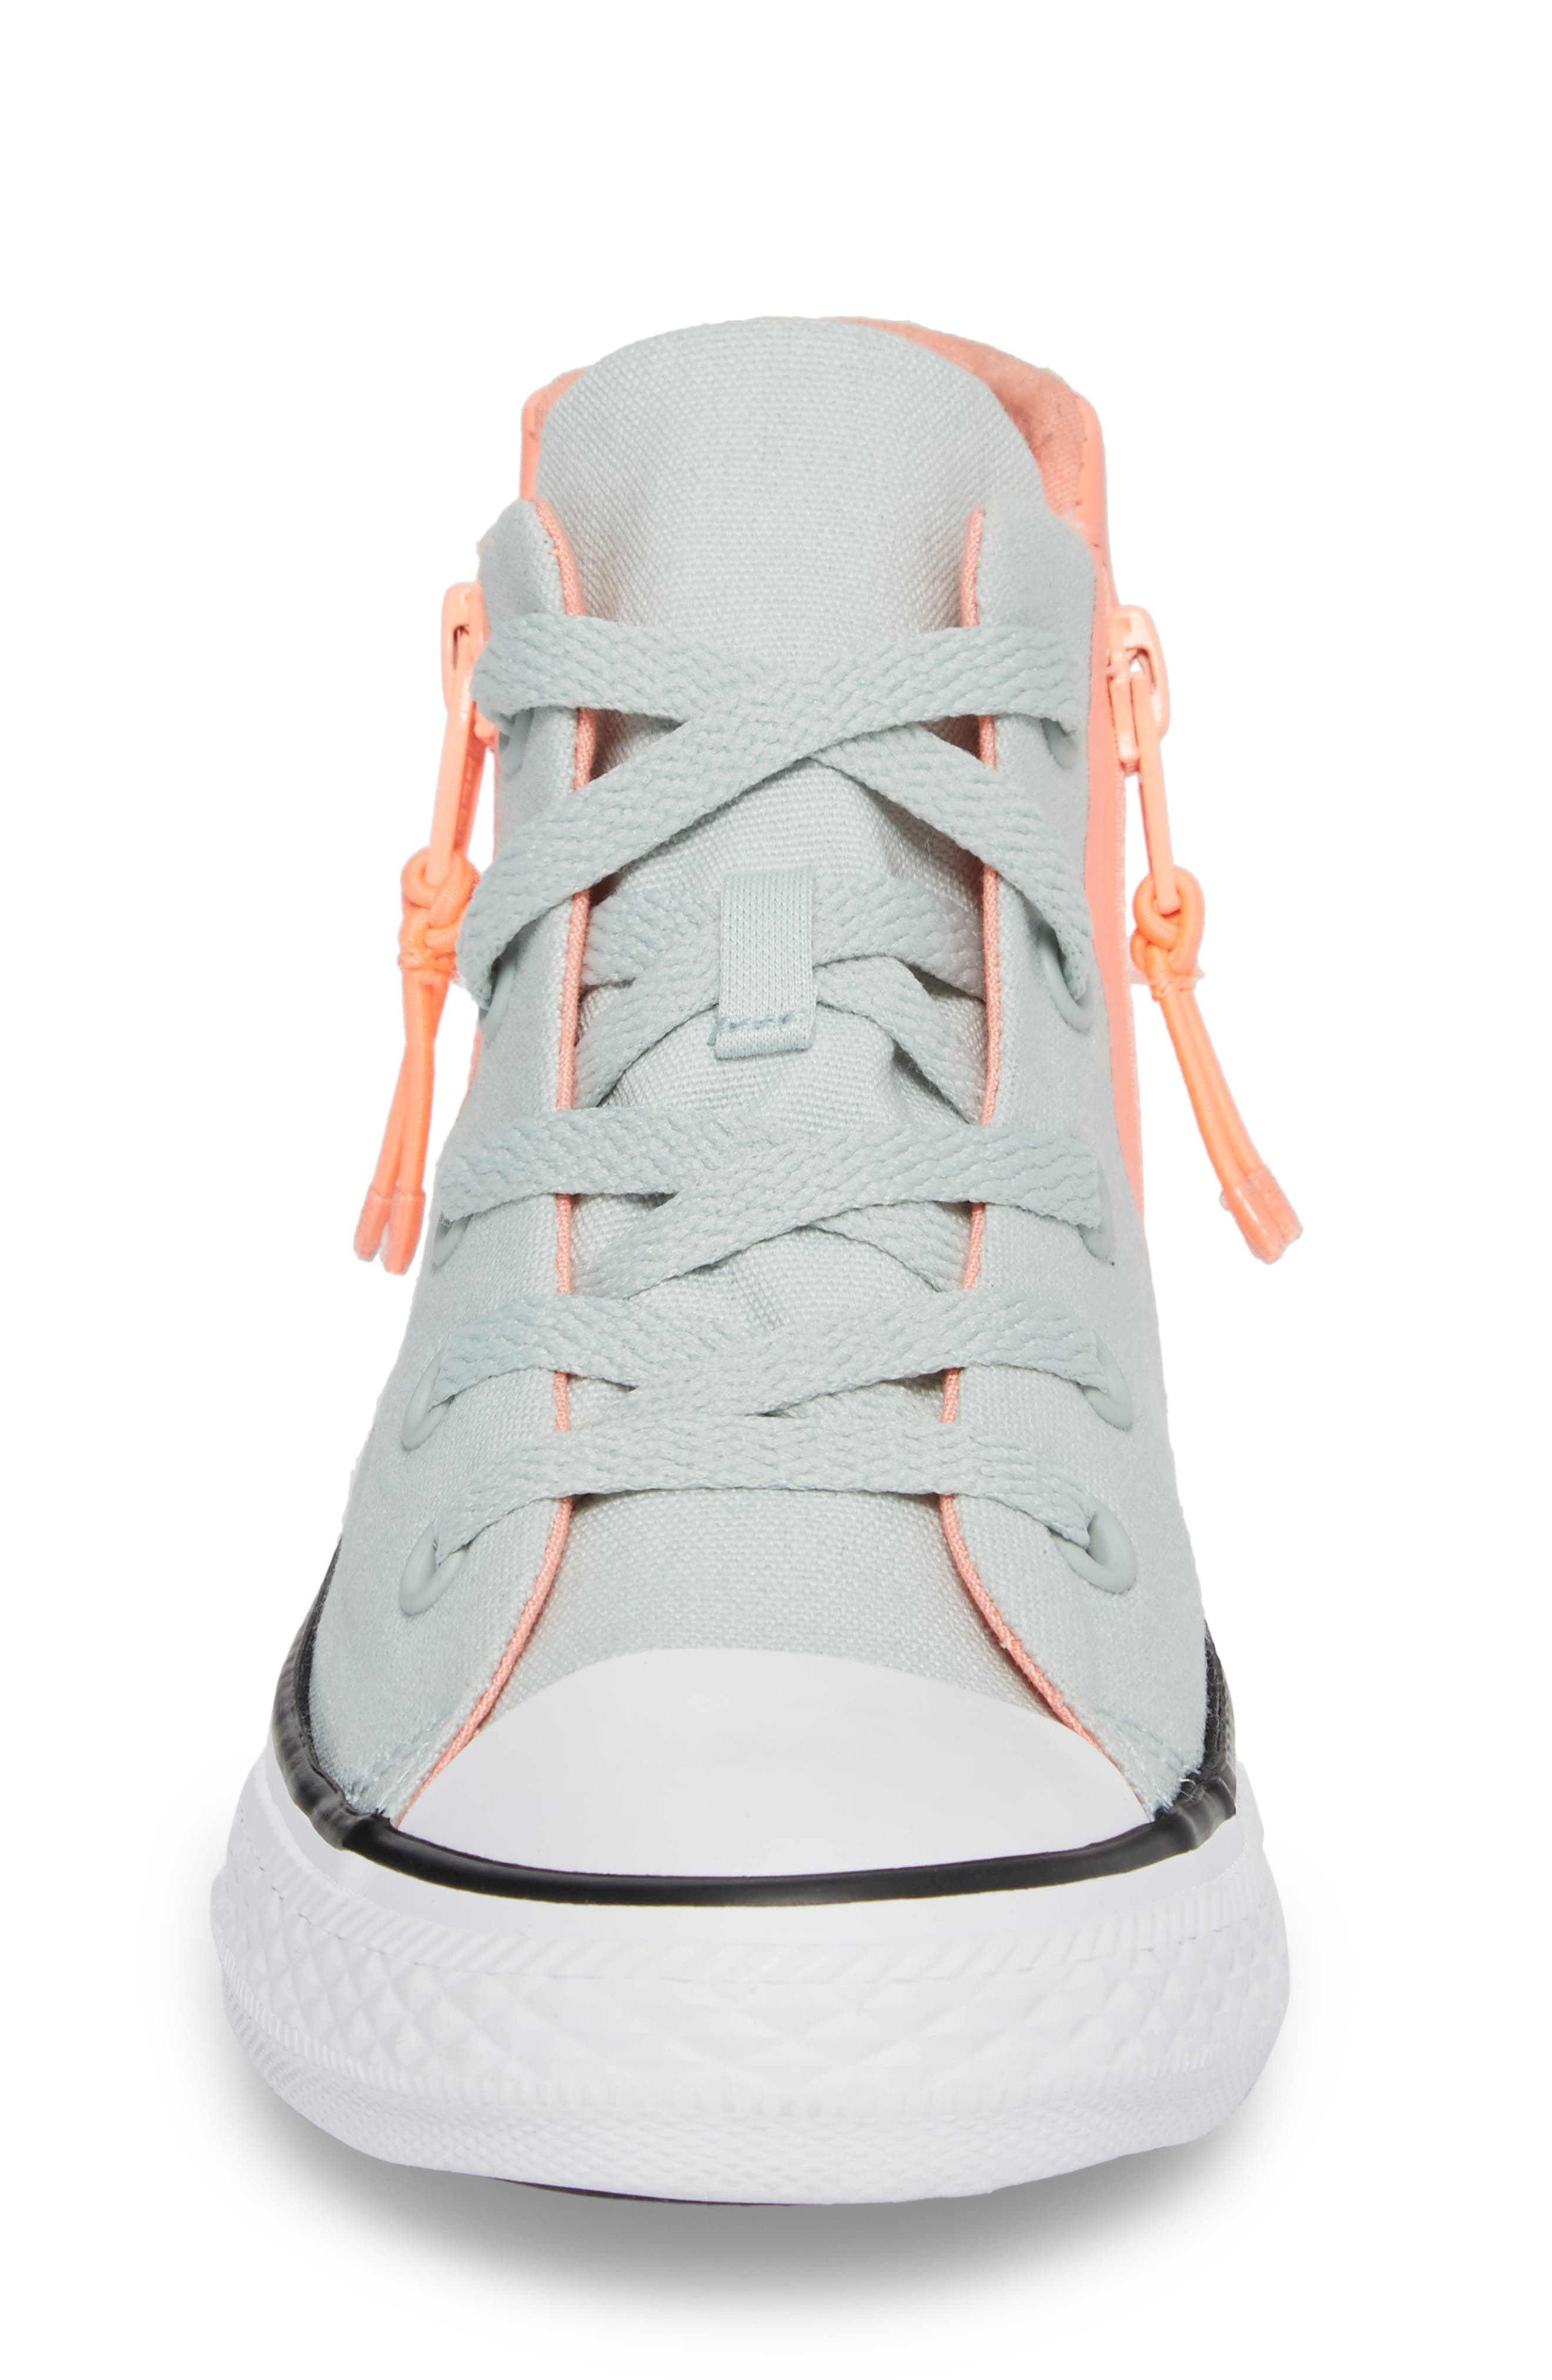 Chuck Taylor<sup>®</sup> All Star<sup>®</sup> Sport Zip High Top Sneaker,                             Alternate thumbnail 4, color,                             416